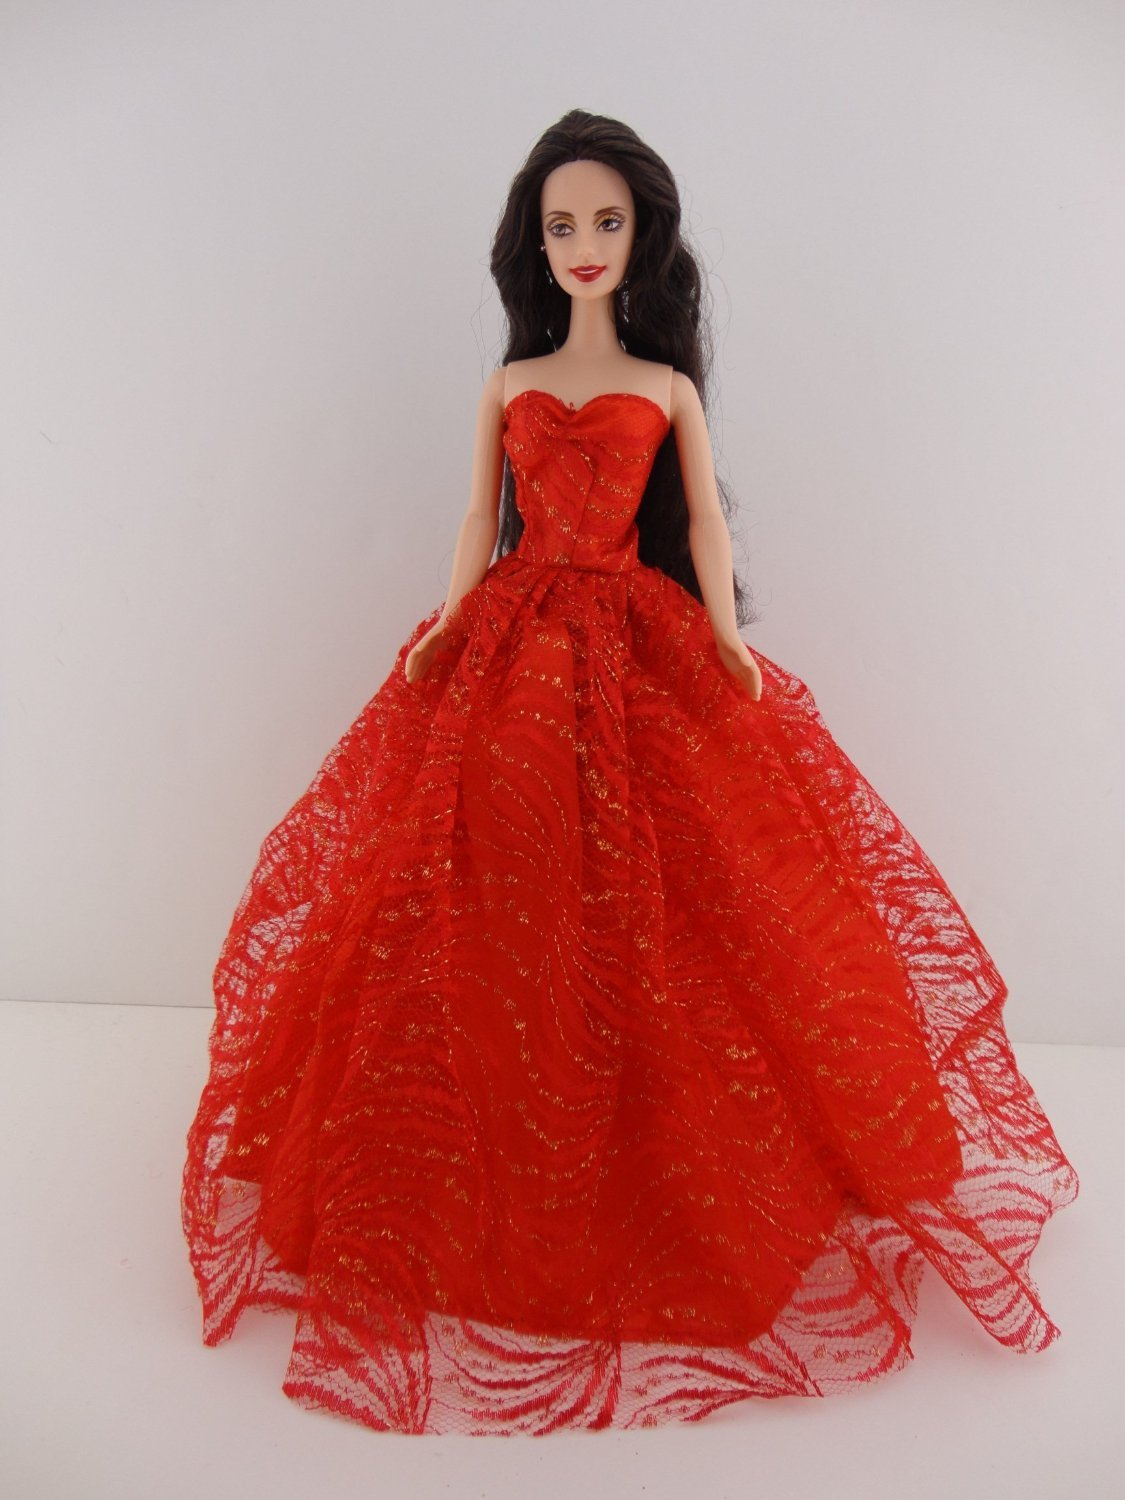 5f9e8e0e57 Heavenly Red Ball Gown with Lots of Gold Sparkle Made to Fit Barbie Doll